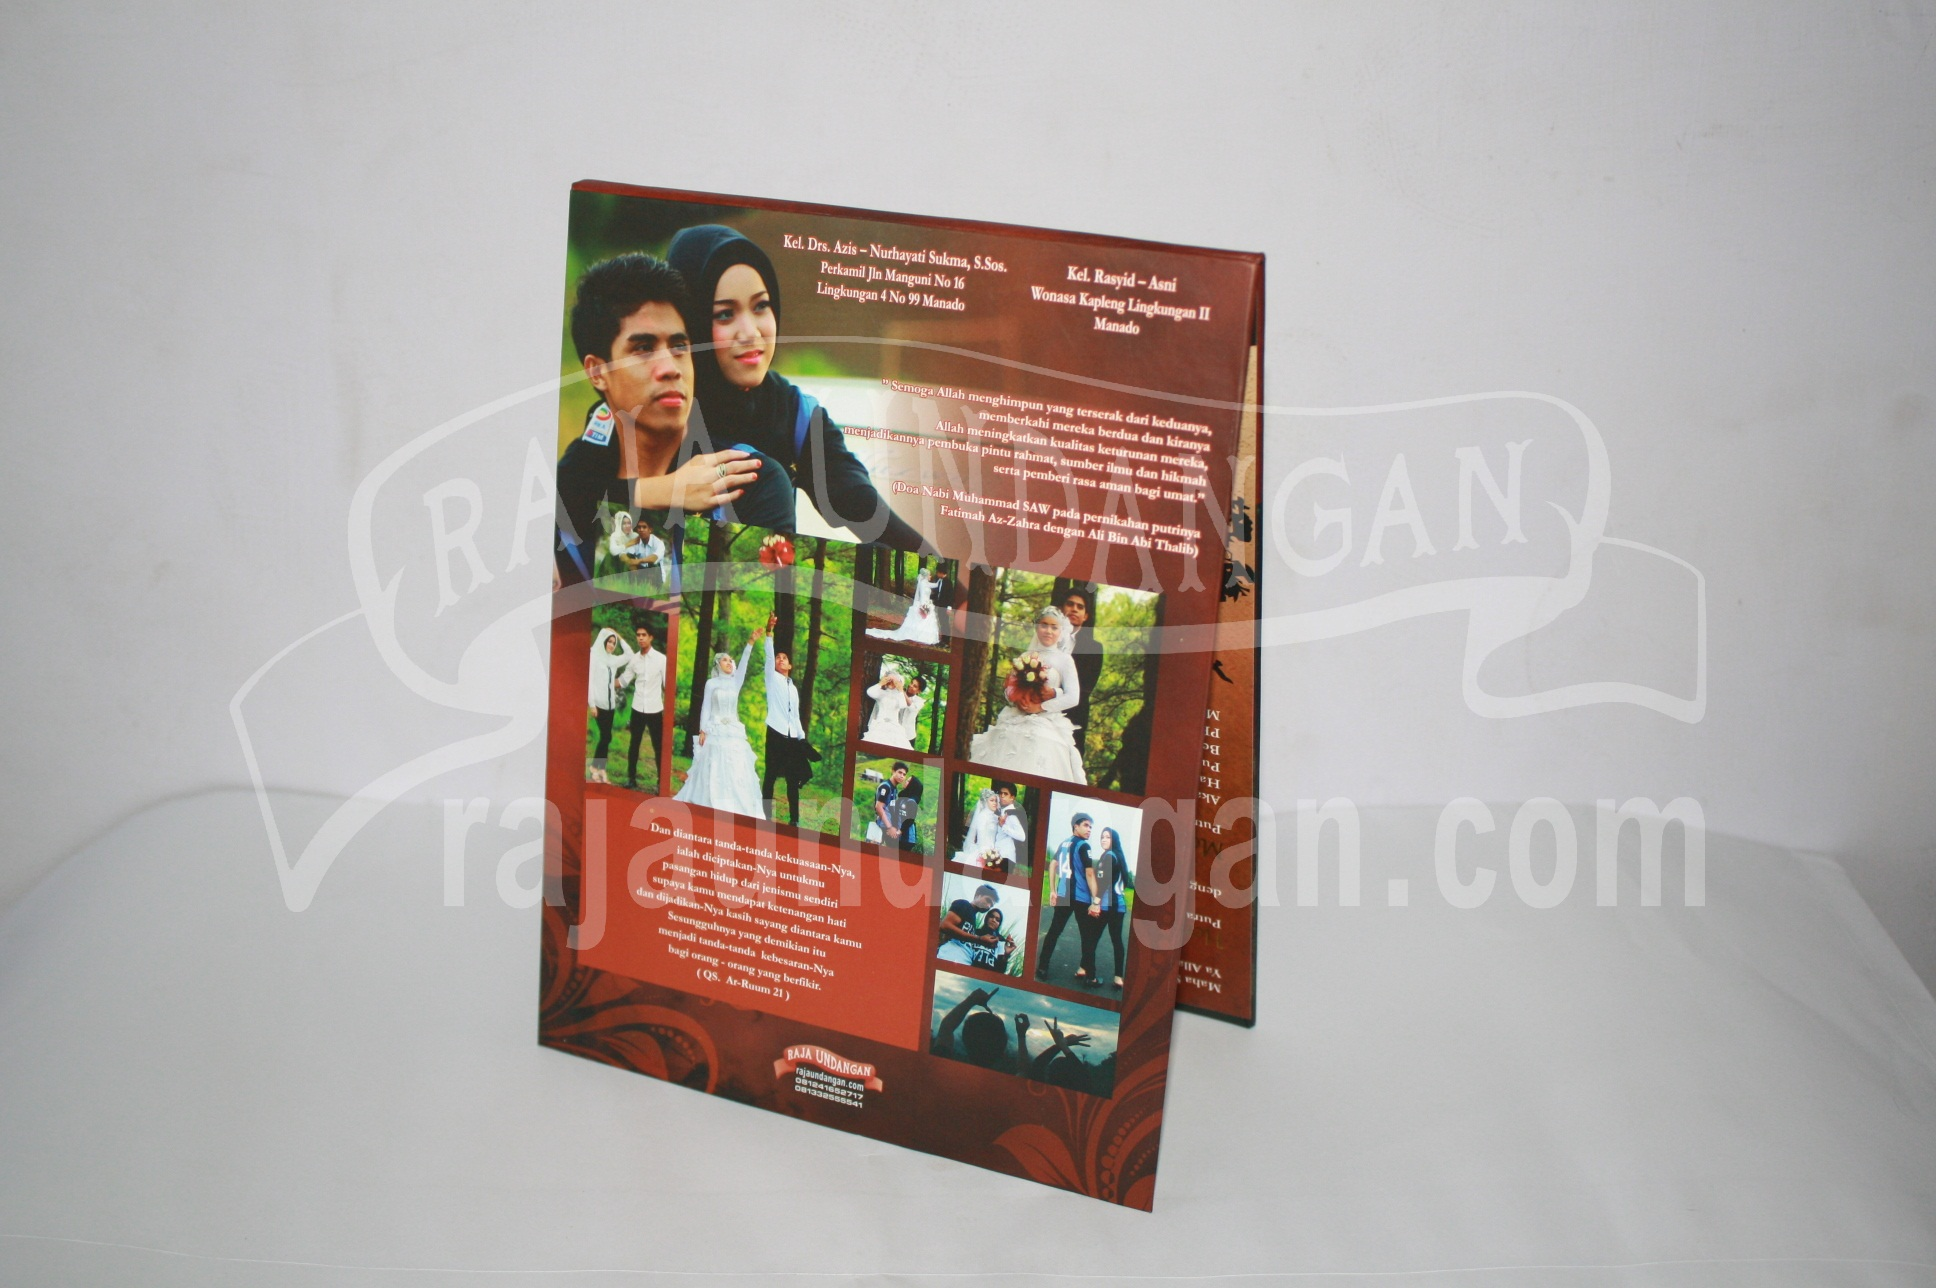 Undangan Pernikahan Hardcover Pop Up Heri dan Mona EDC 43 1 - Percetakan Wedding Invitations Unik dan Simple di Simomulyo